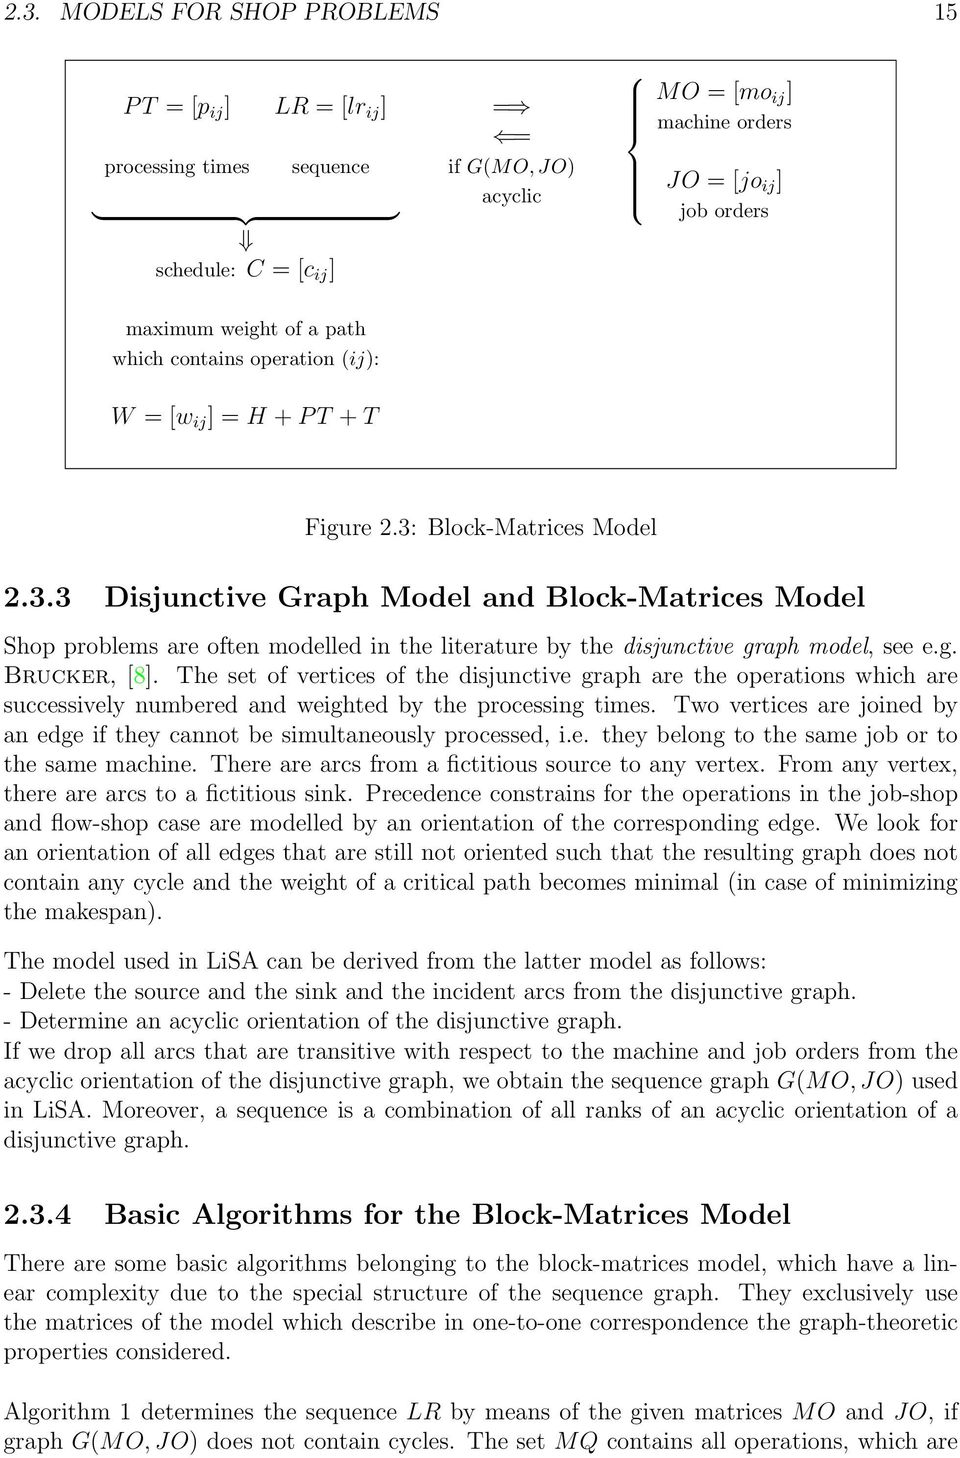 Block-Matrices Model 2.3.3 Disjunctive Graph Model and Block-Matrices Model Shop problems are often modelled in the literature by the disjunctive graph model, see e.g. Brucker, [8].